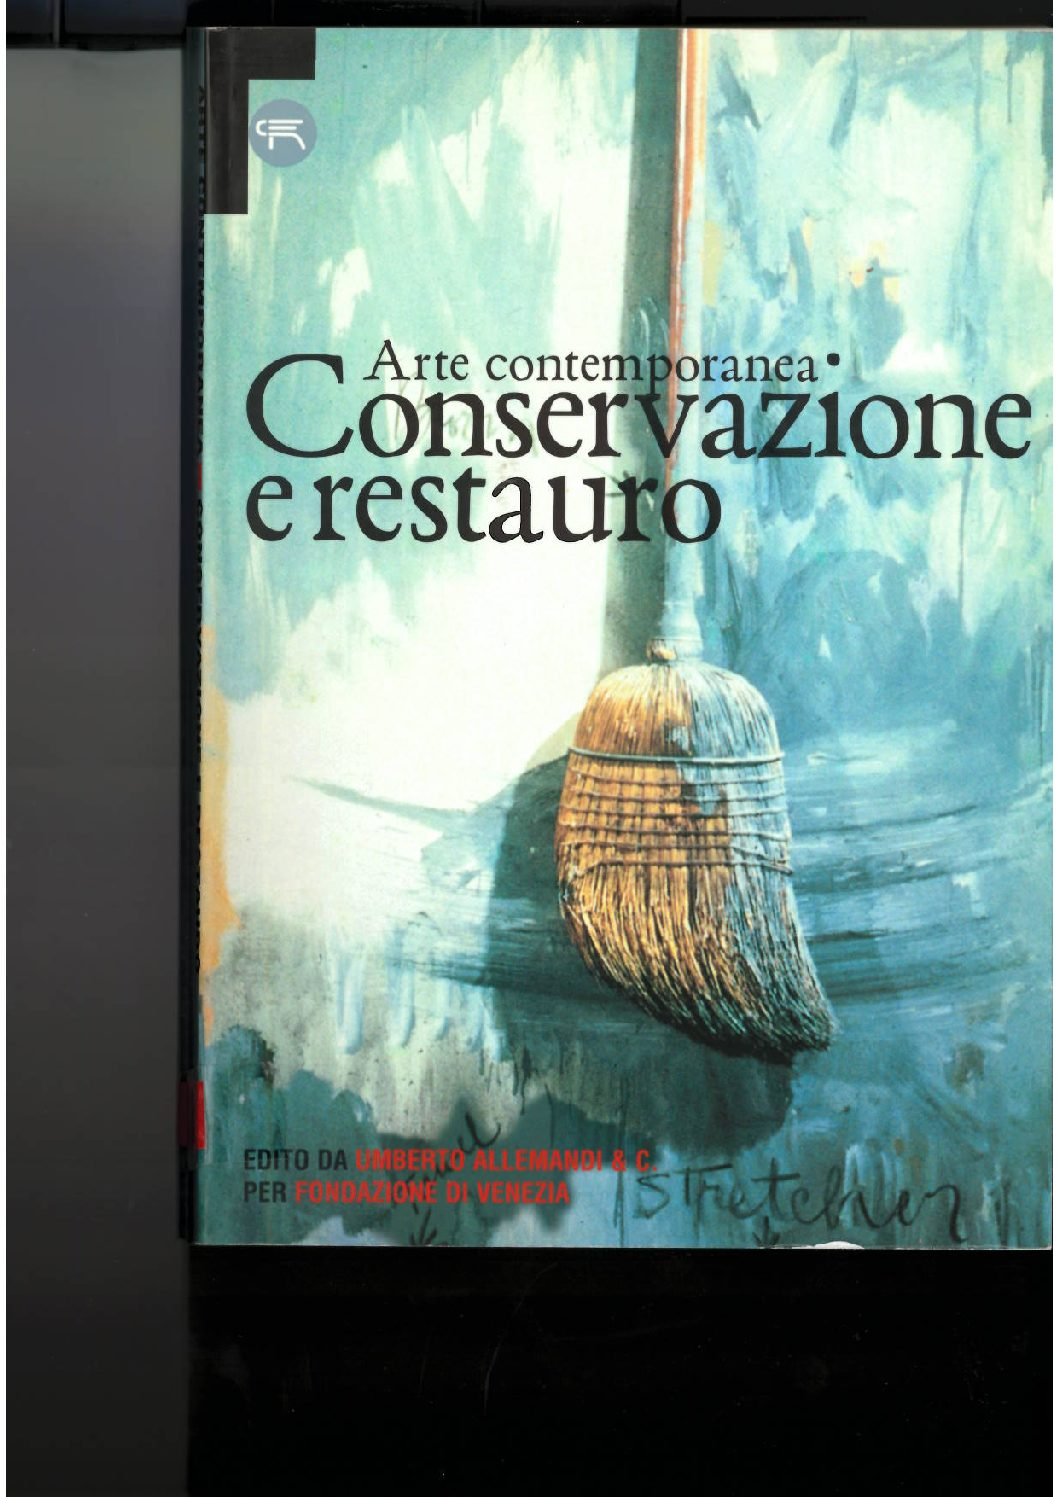 https://cbccoop.it/app/uploads/2017/09/COP-ARTE-CONTEMPORANEA-CONSERVAZIONE-E-RESTAURO-SILVESTRI-pdf.jpg